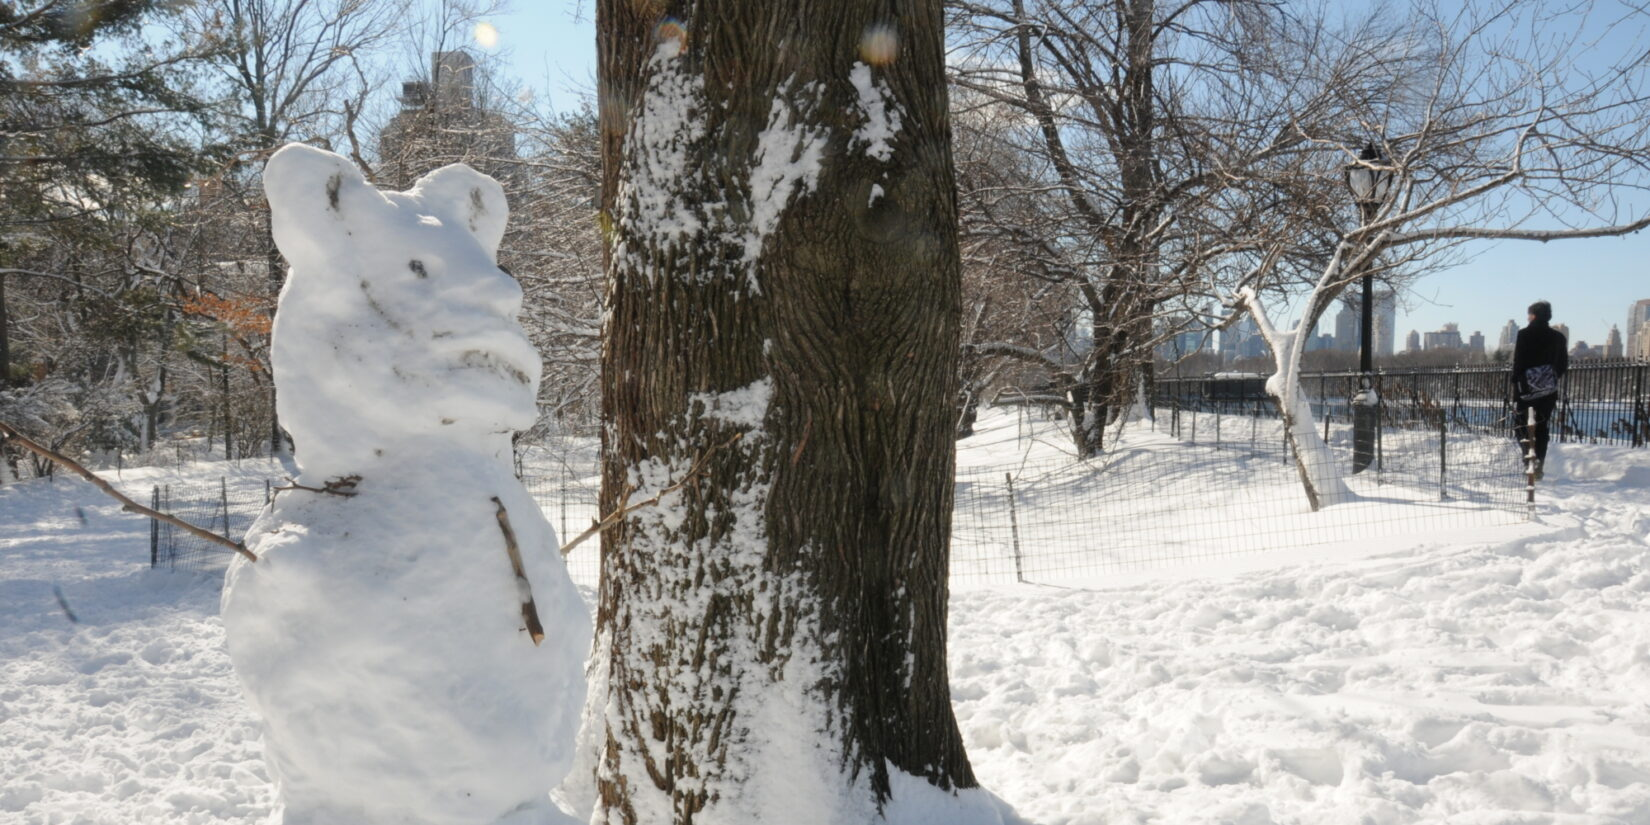 A snowbear (sic) stands wintry guard by the Reservoir